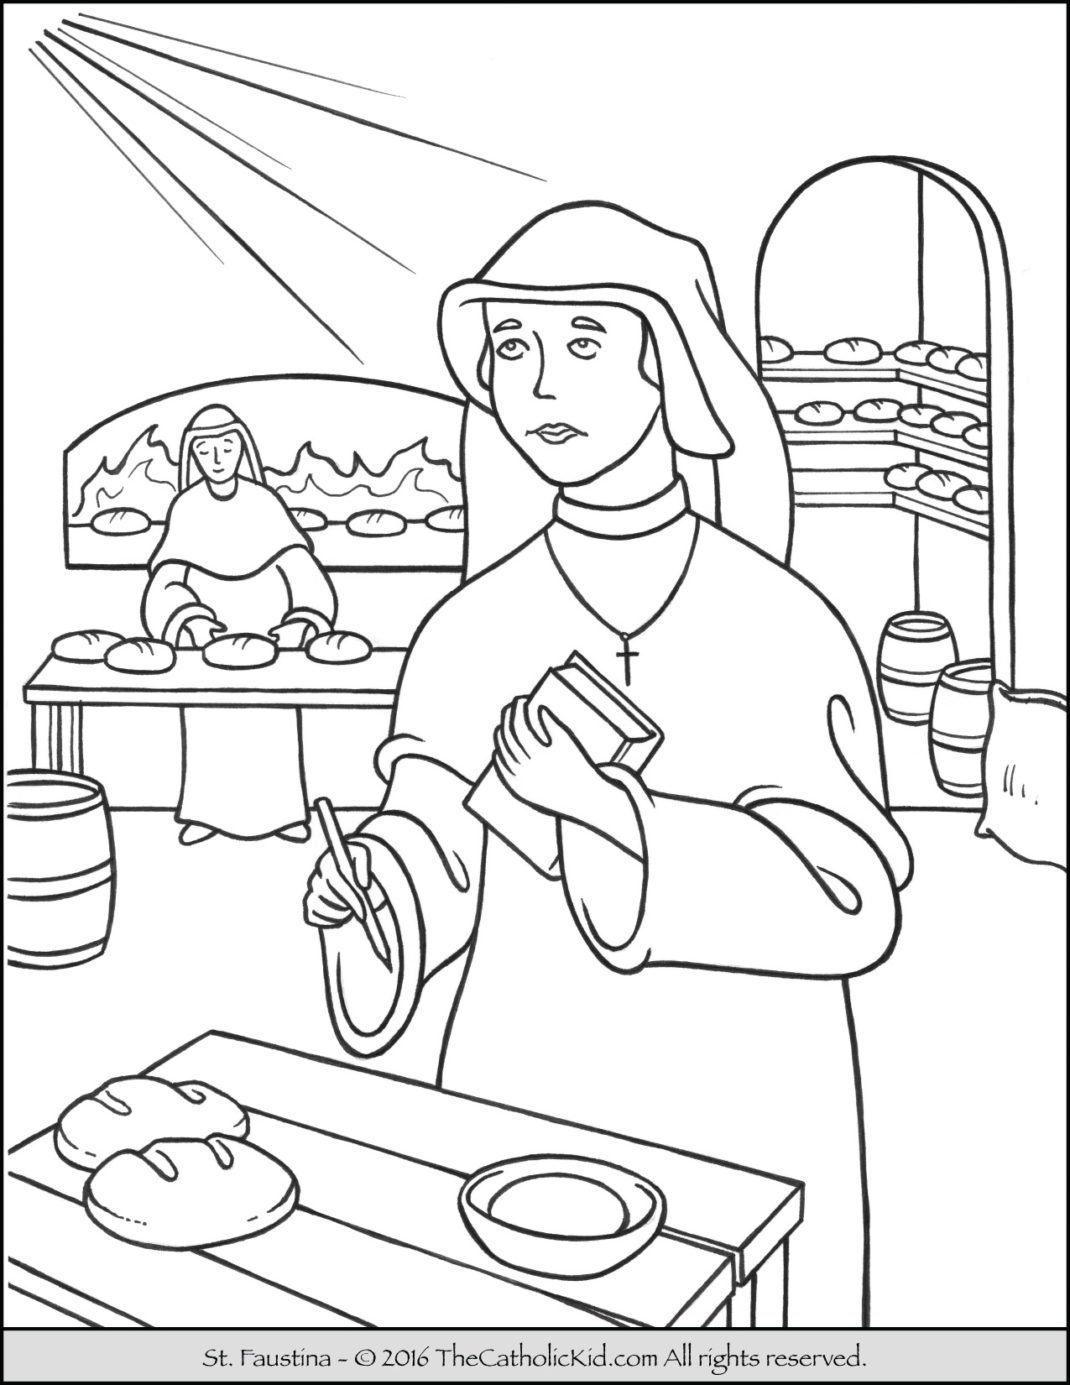 Glorious Mysteries Rosary Coloring Pages The Catholic Kid - oukas.info